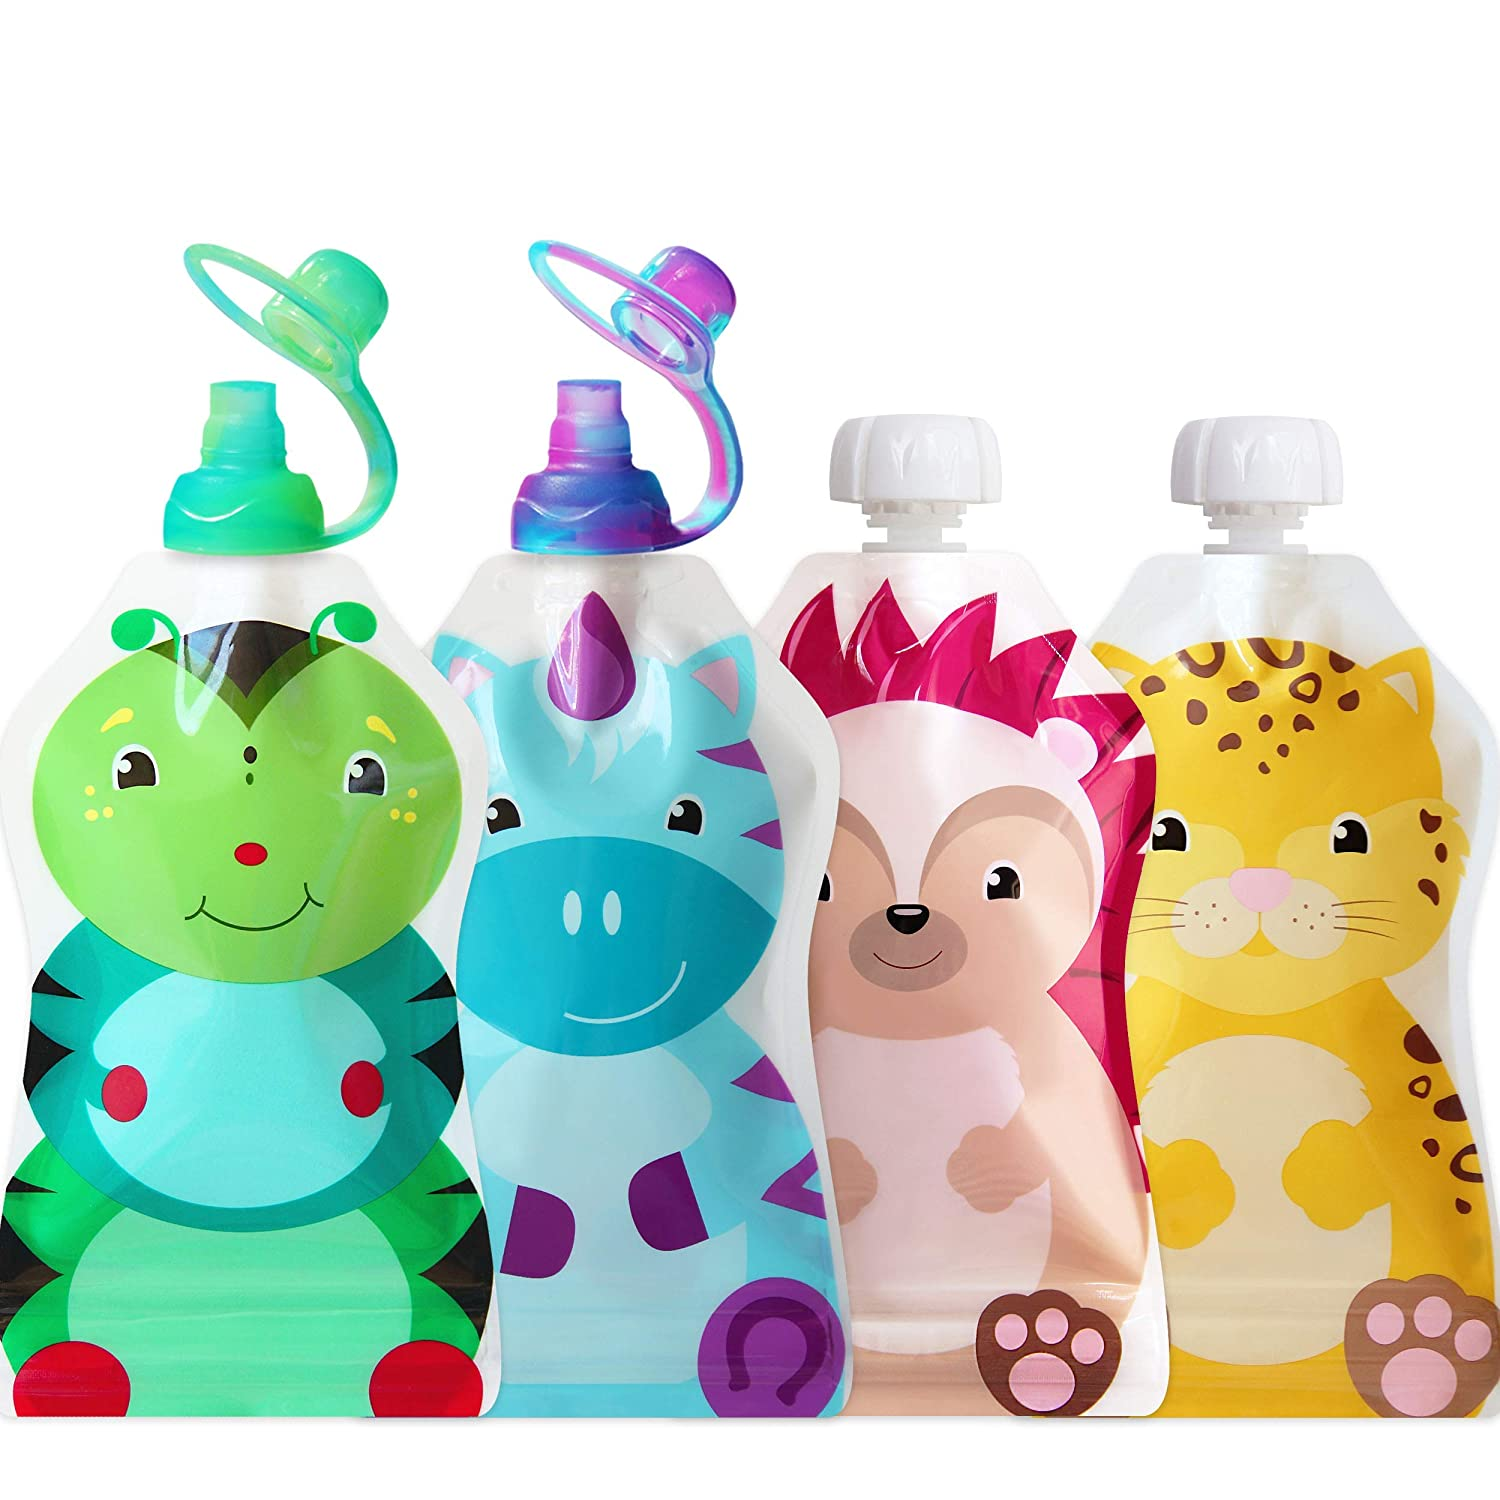 ChooMee Reusable Baby Food Pouch Starter Set, SnakPack | 4 CT, 5 oz | Includes SoftSip Pouch Tops, 2CT, Green Purple